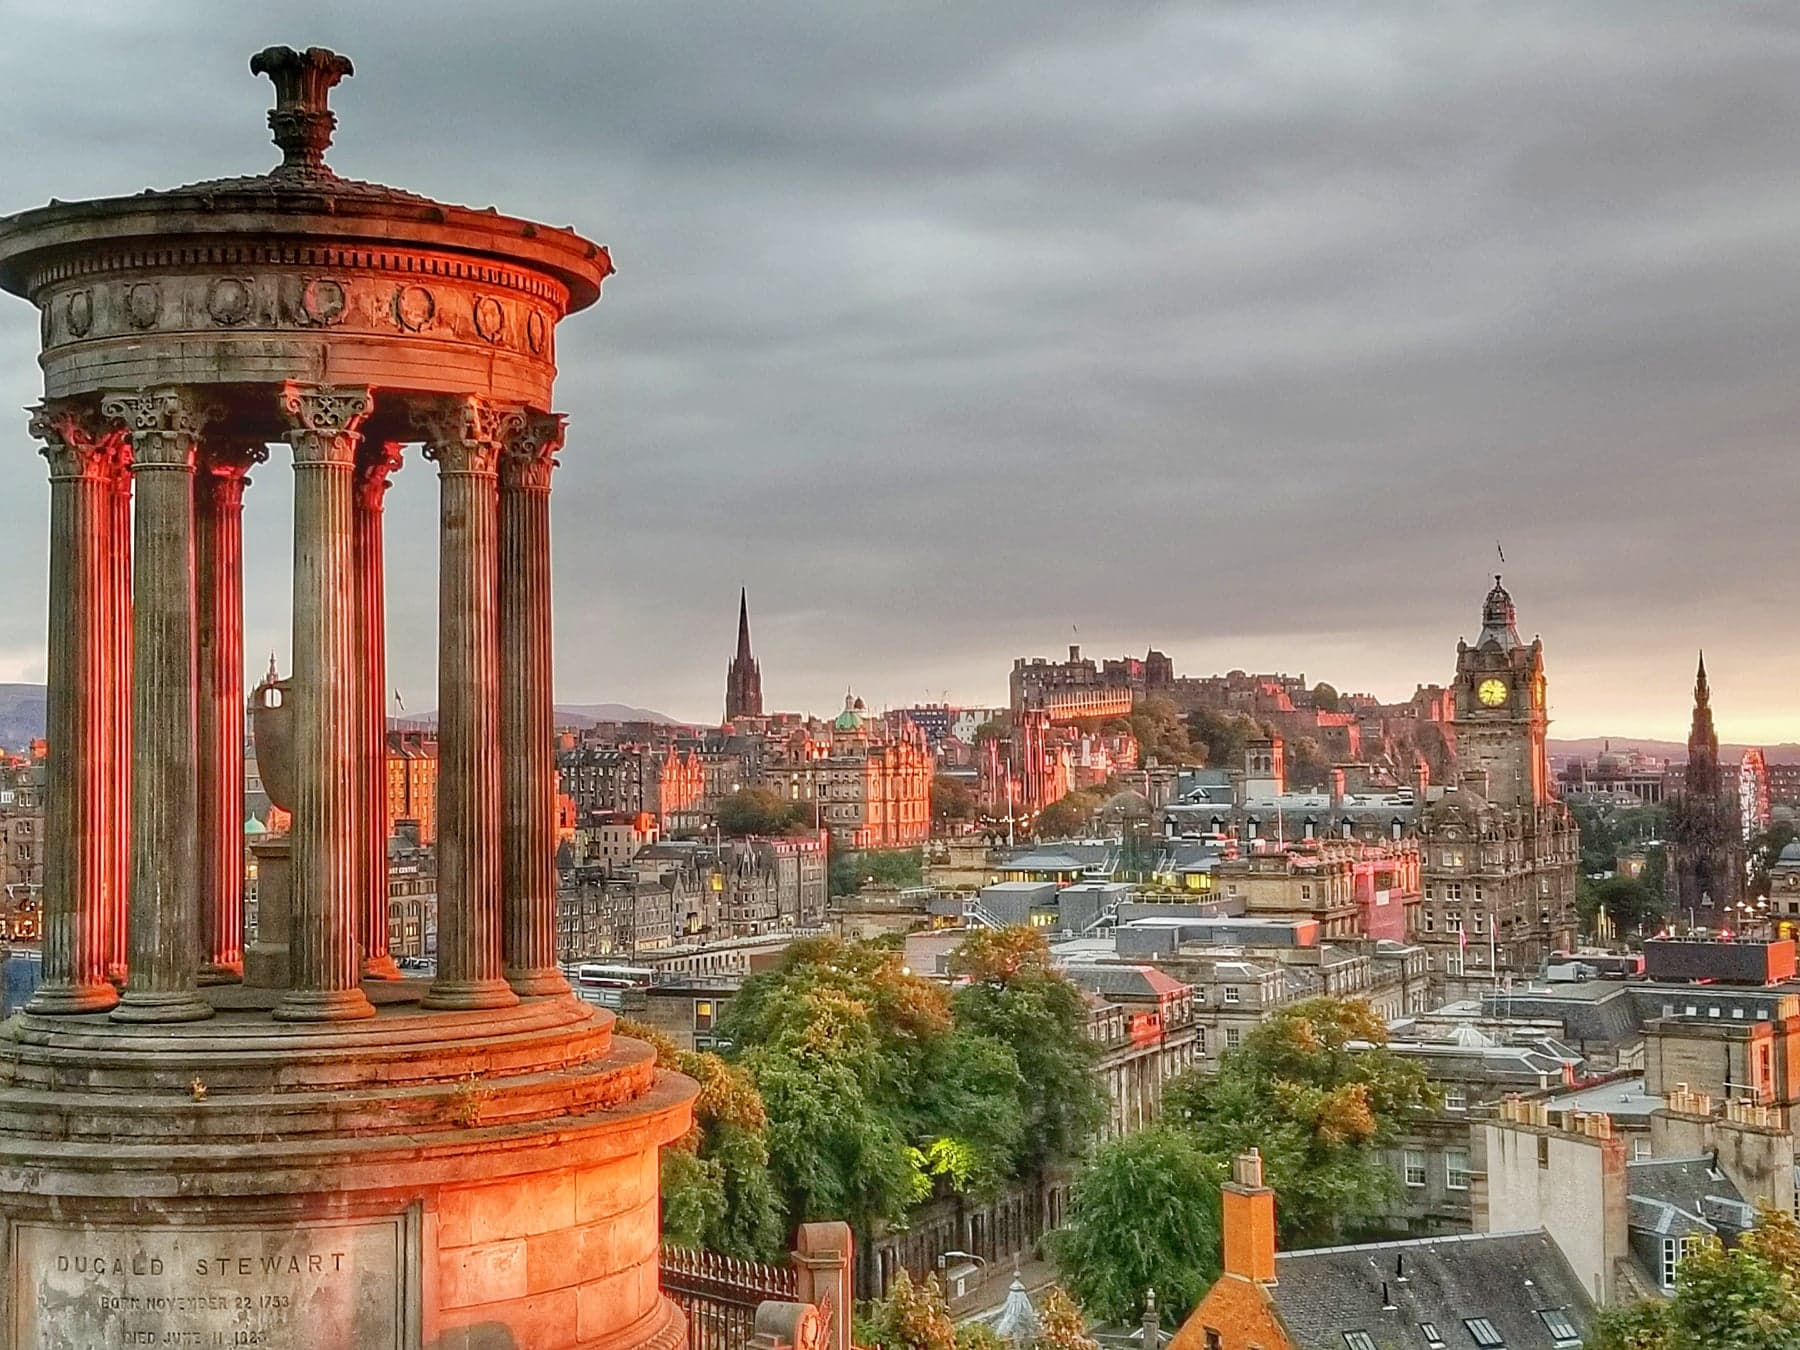 places to visit in Edinburgh - Calton Hill